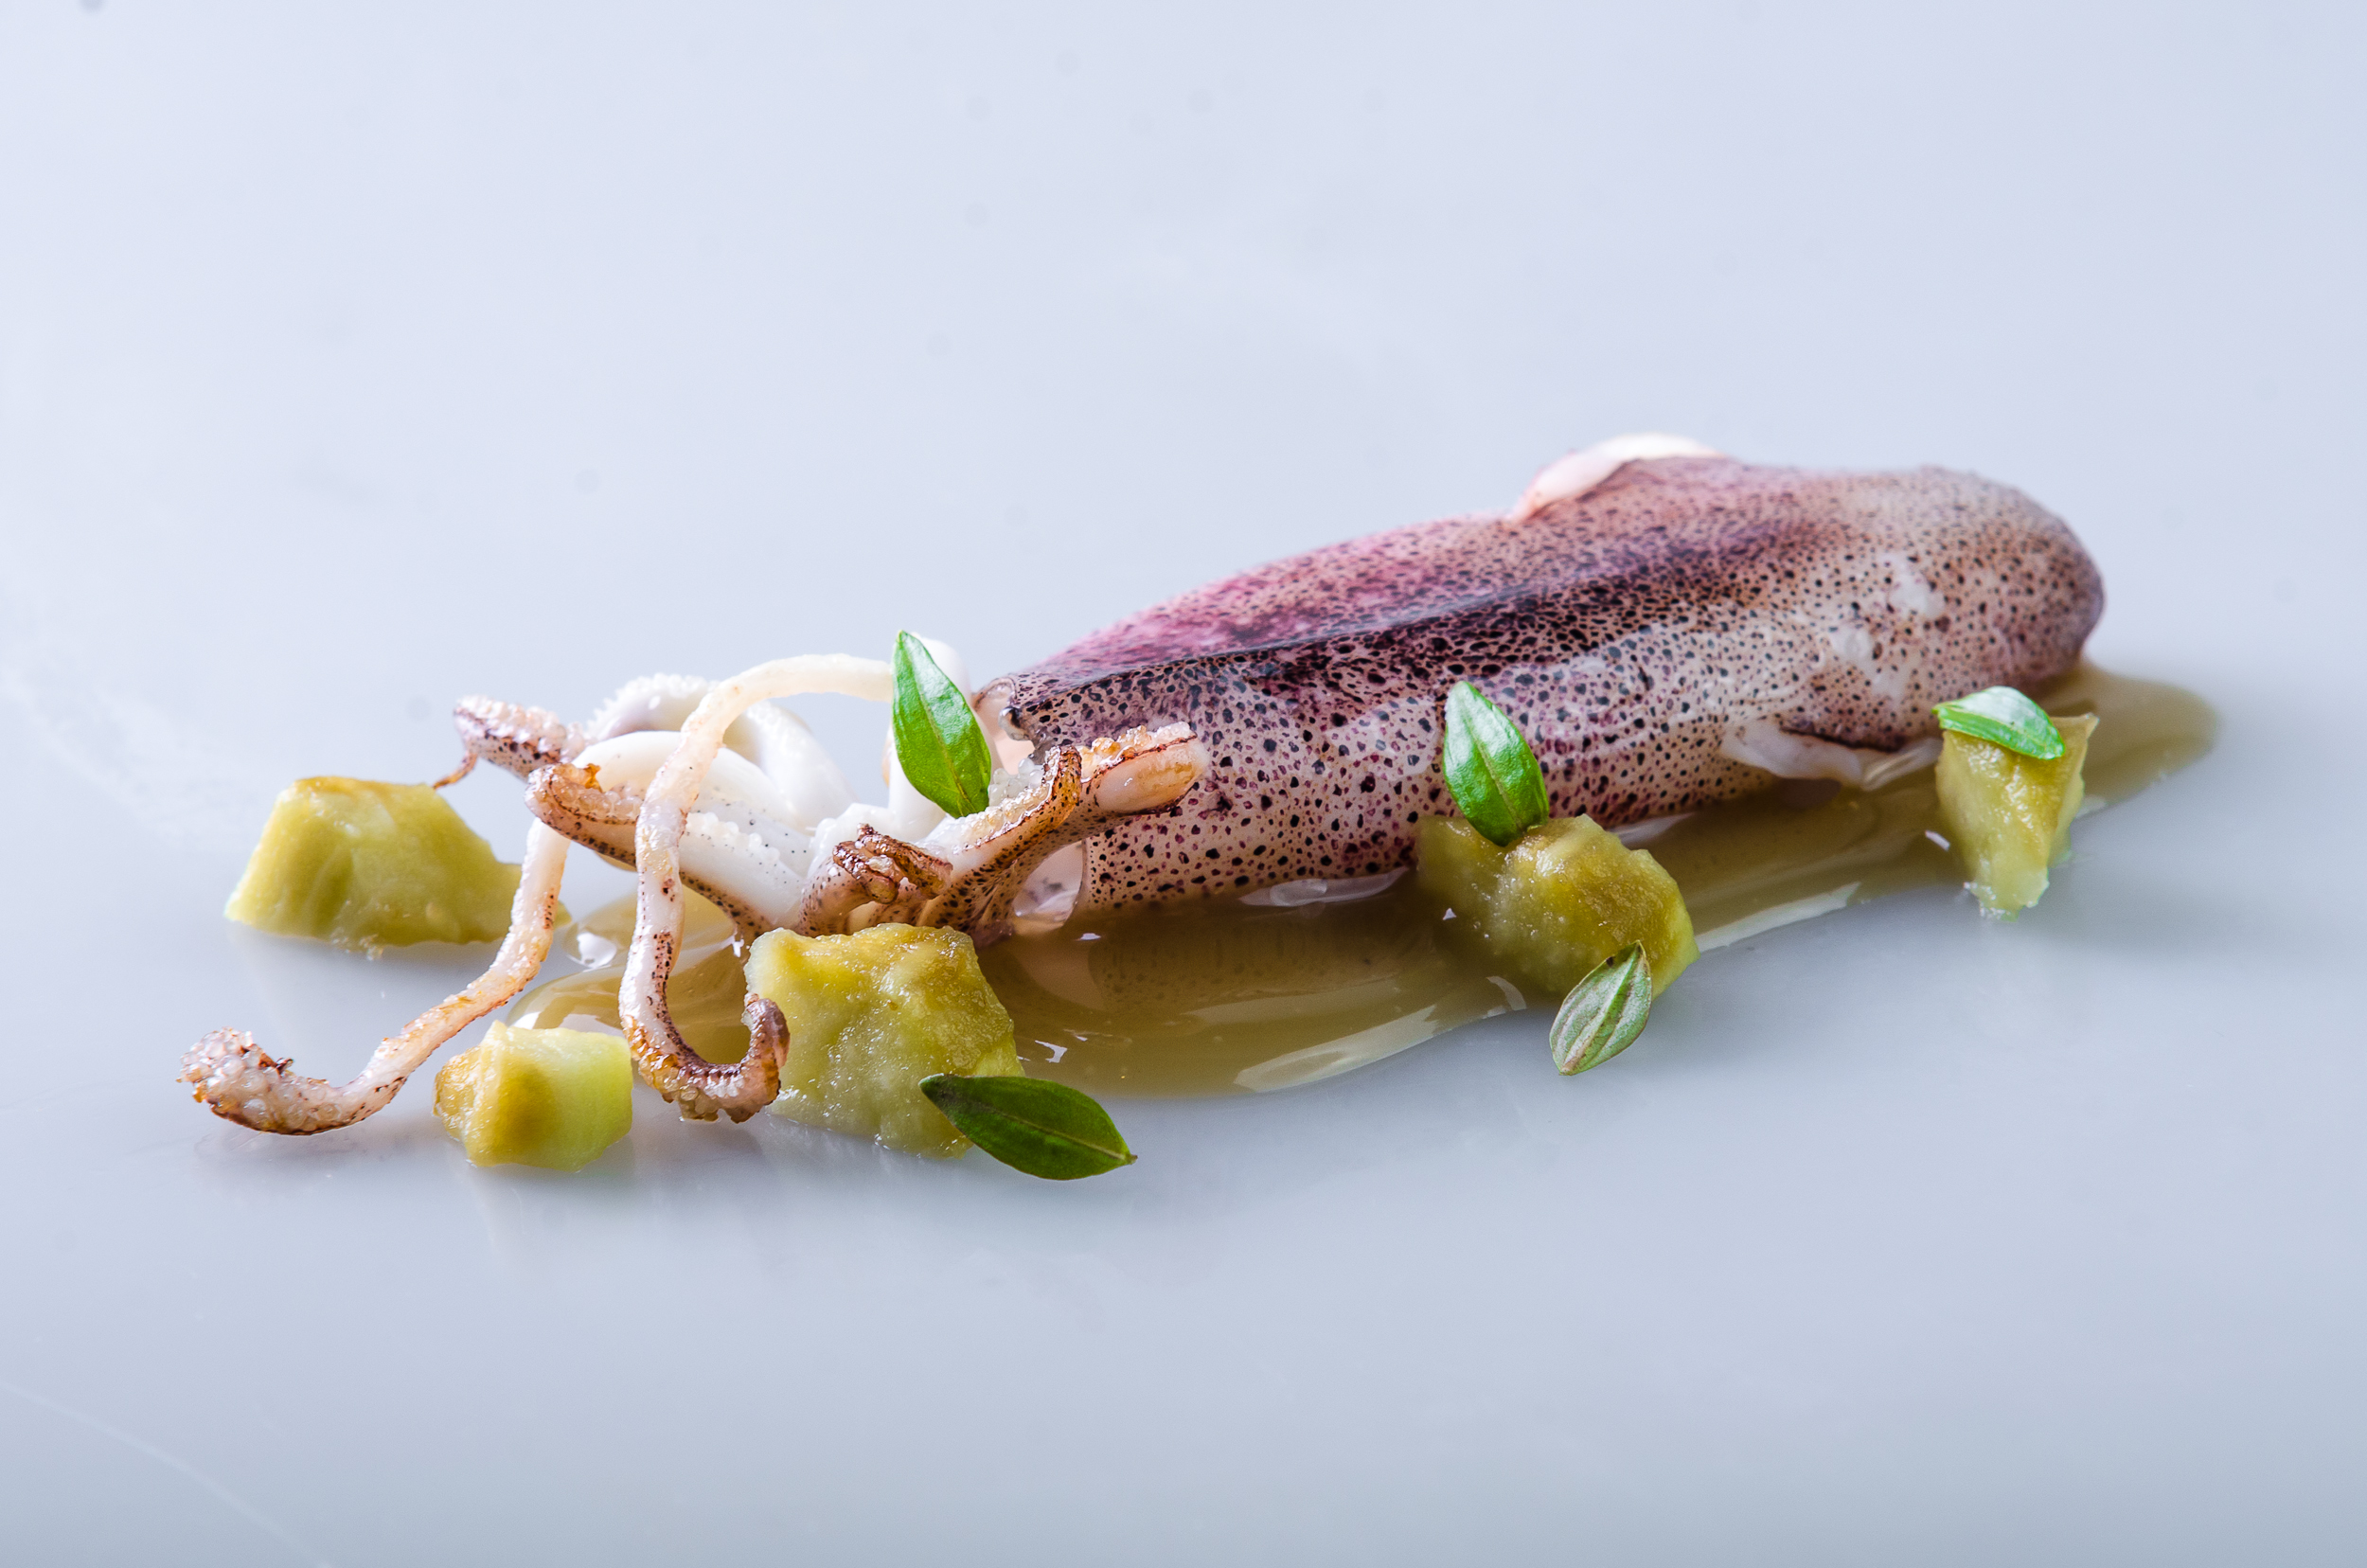 Aubergine: Squid and Eggplant by Chele Gonzalez (Gallery Vask)